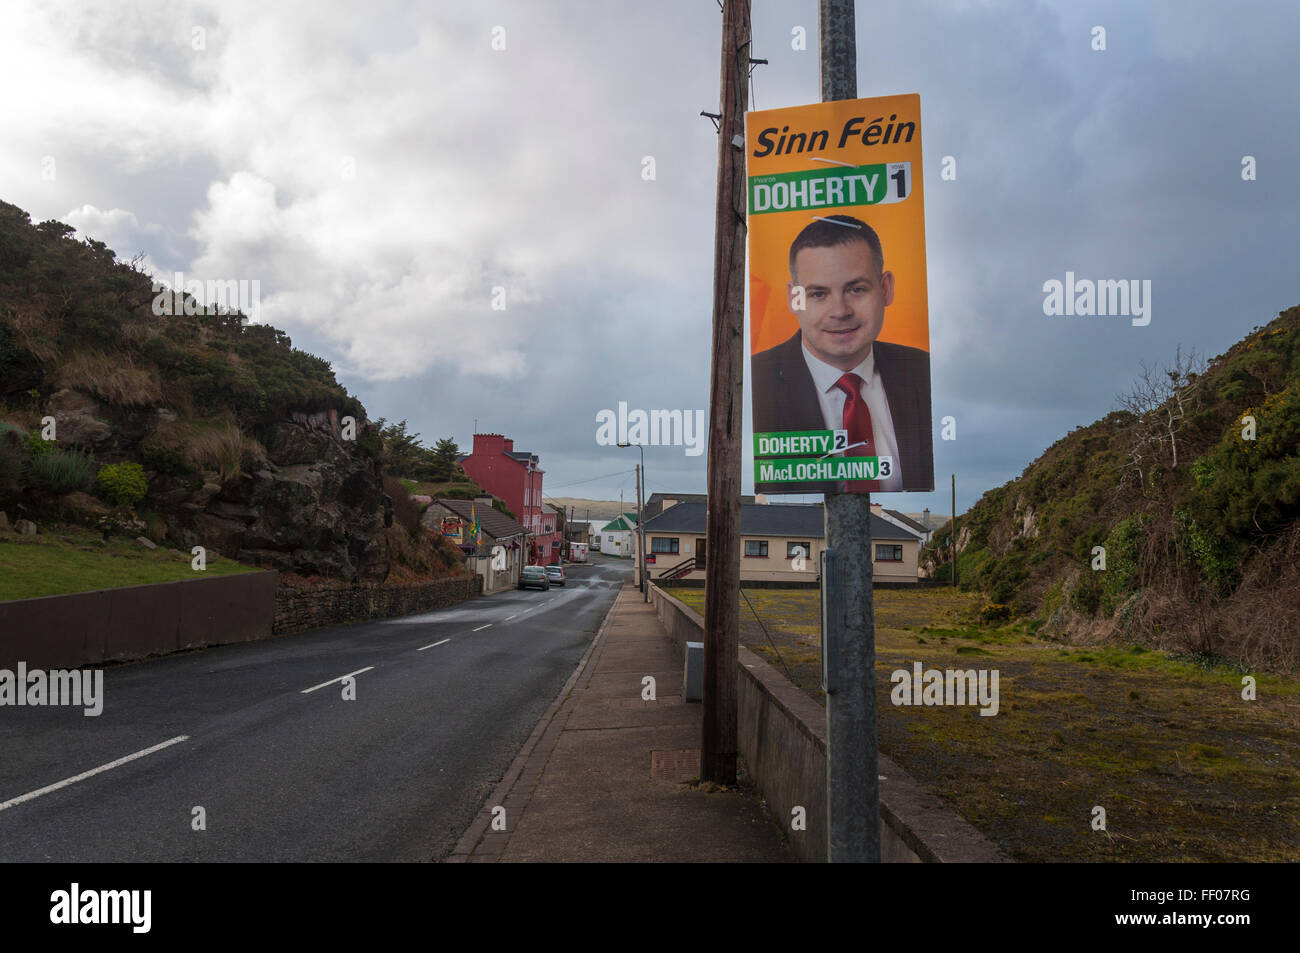 Election 2016 poster for Sinn Féin TD Pearse Doherty in Burtonport, County Donegal, Ireland - Stock Image